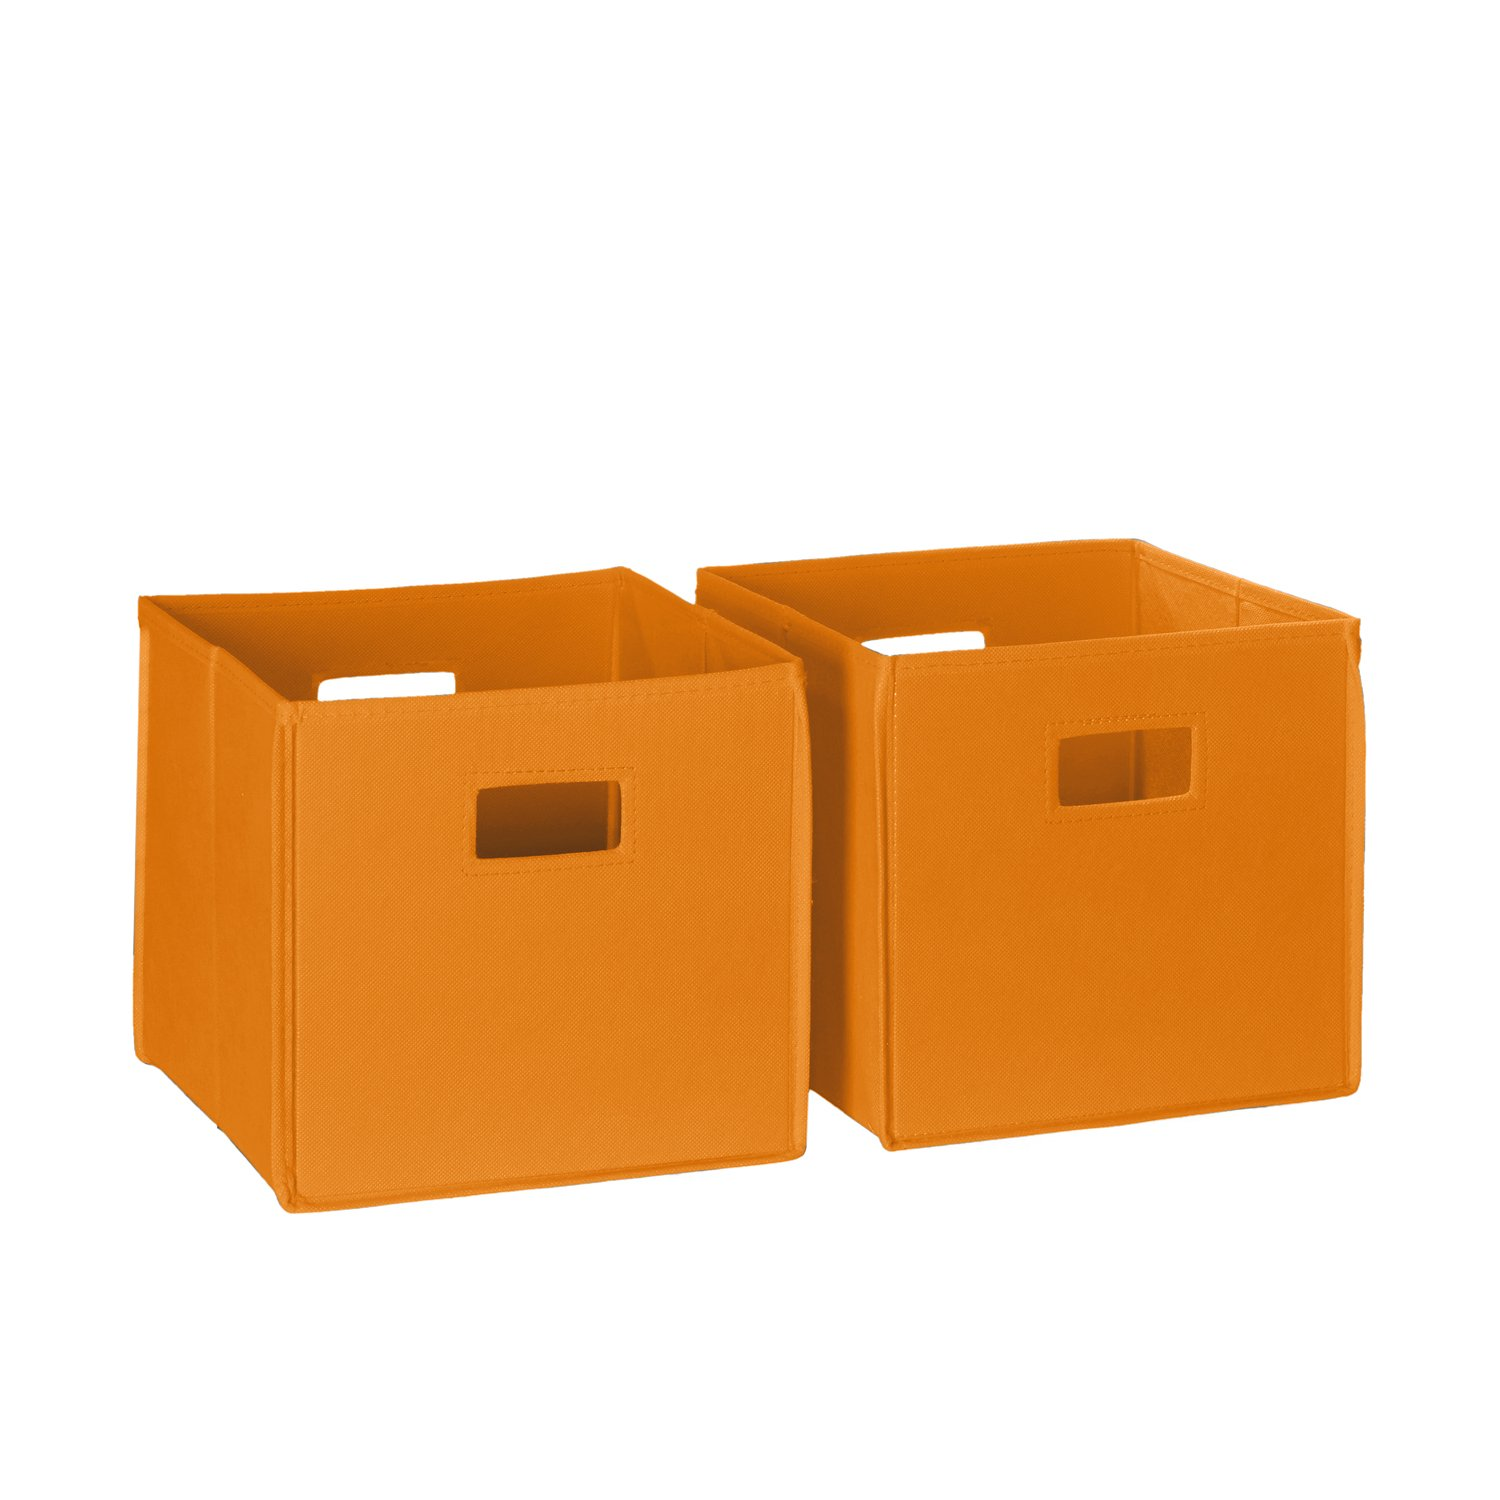 RiverRidge Kids 2pc Soft Storage Bins mezz mpc3 111 2pc